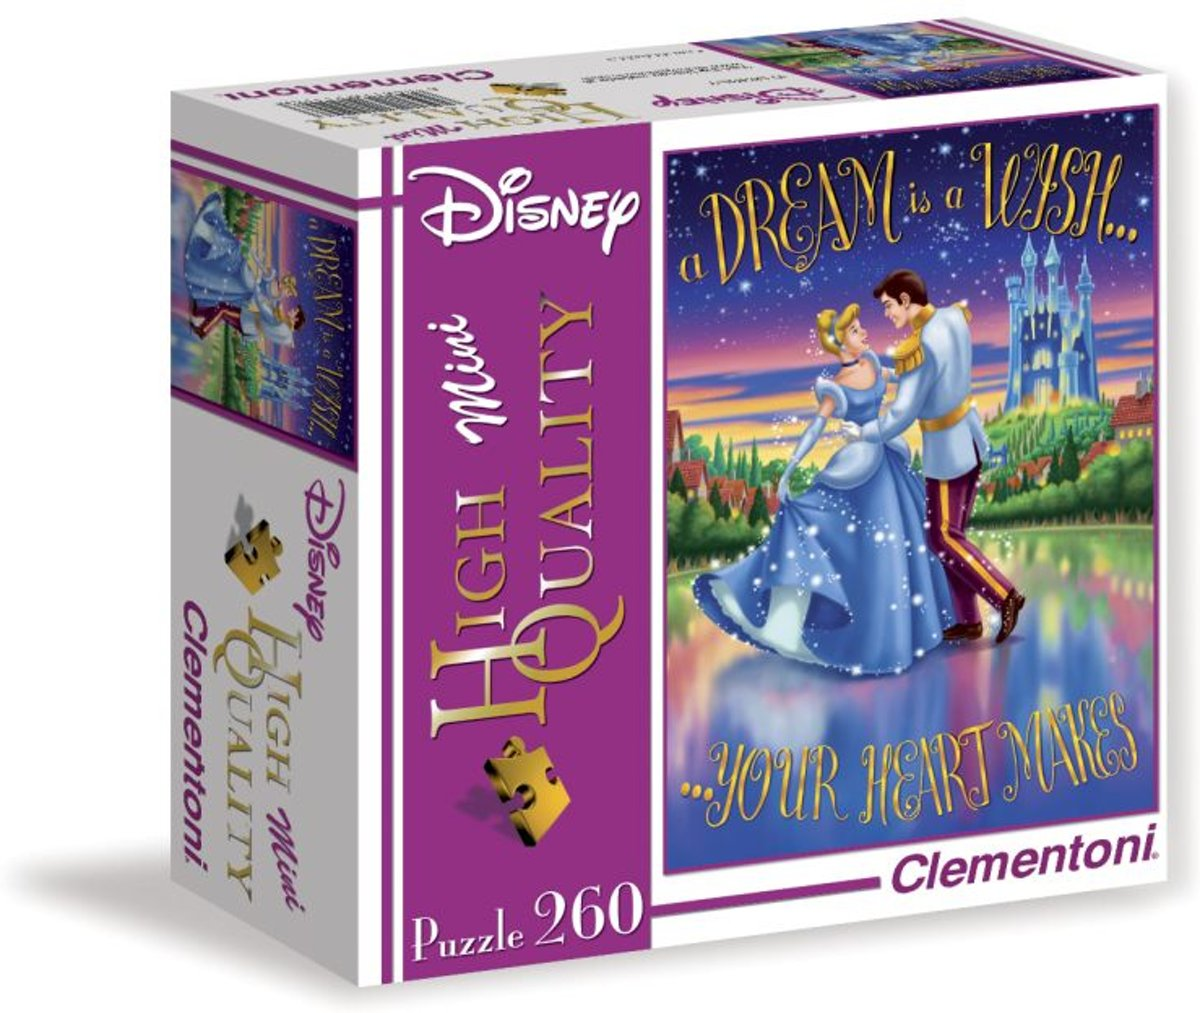 Puzzels Mini High Quality Disney - 260 stuks